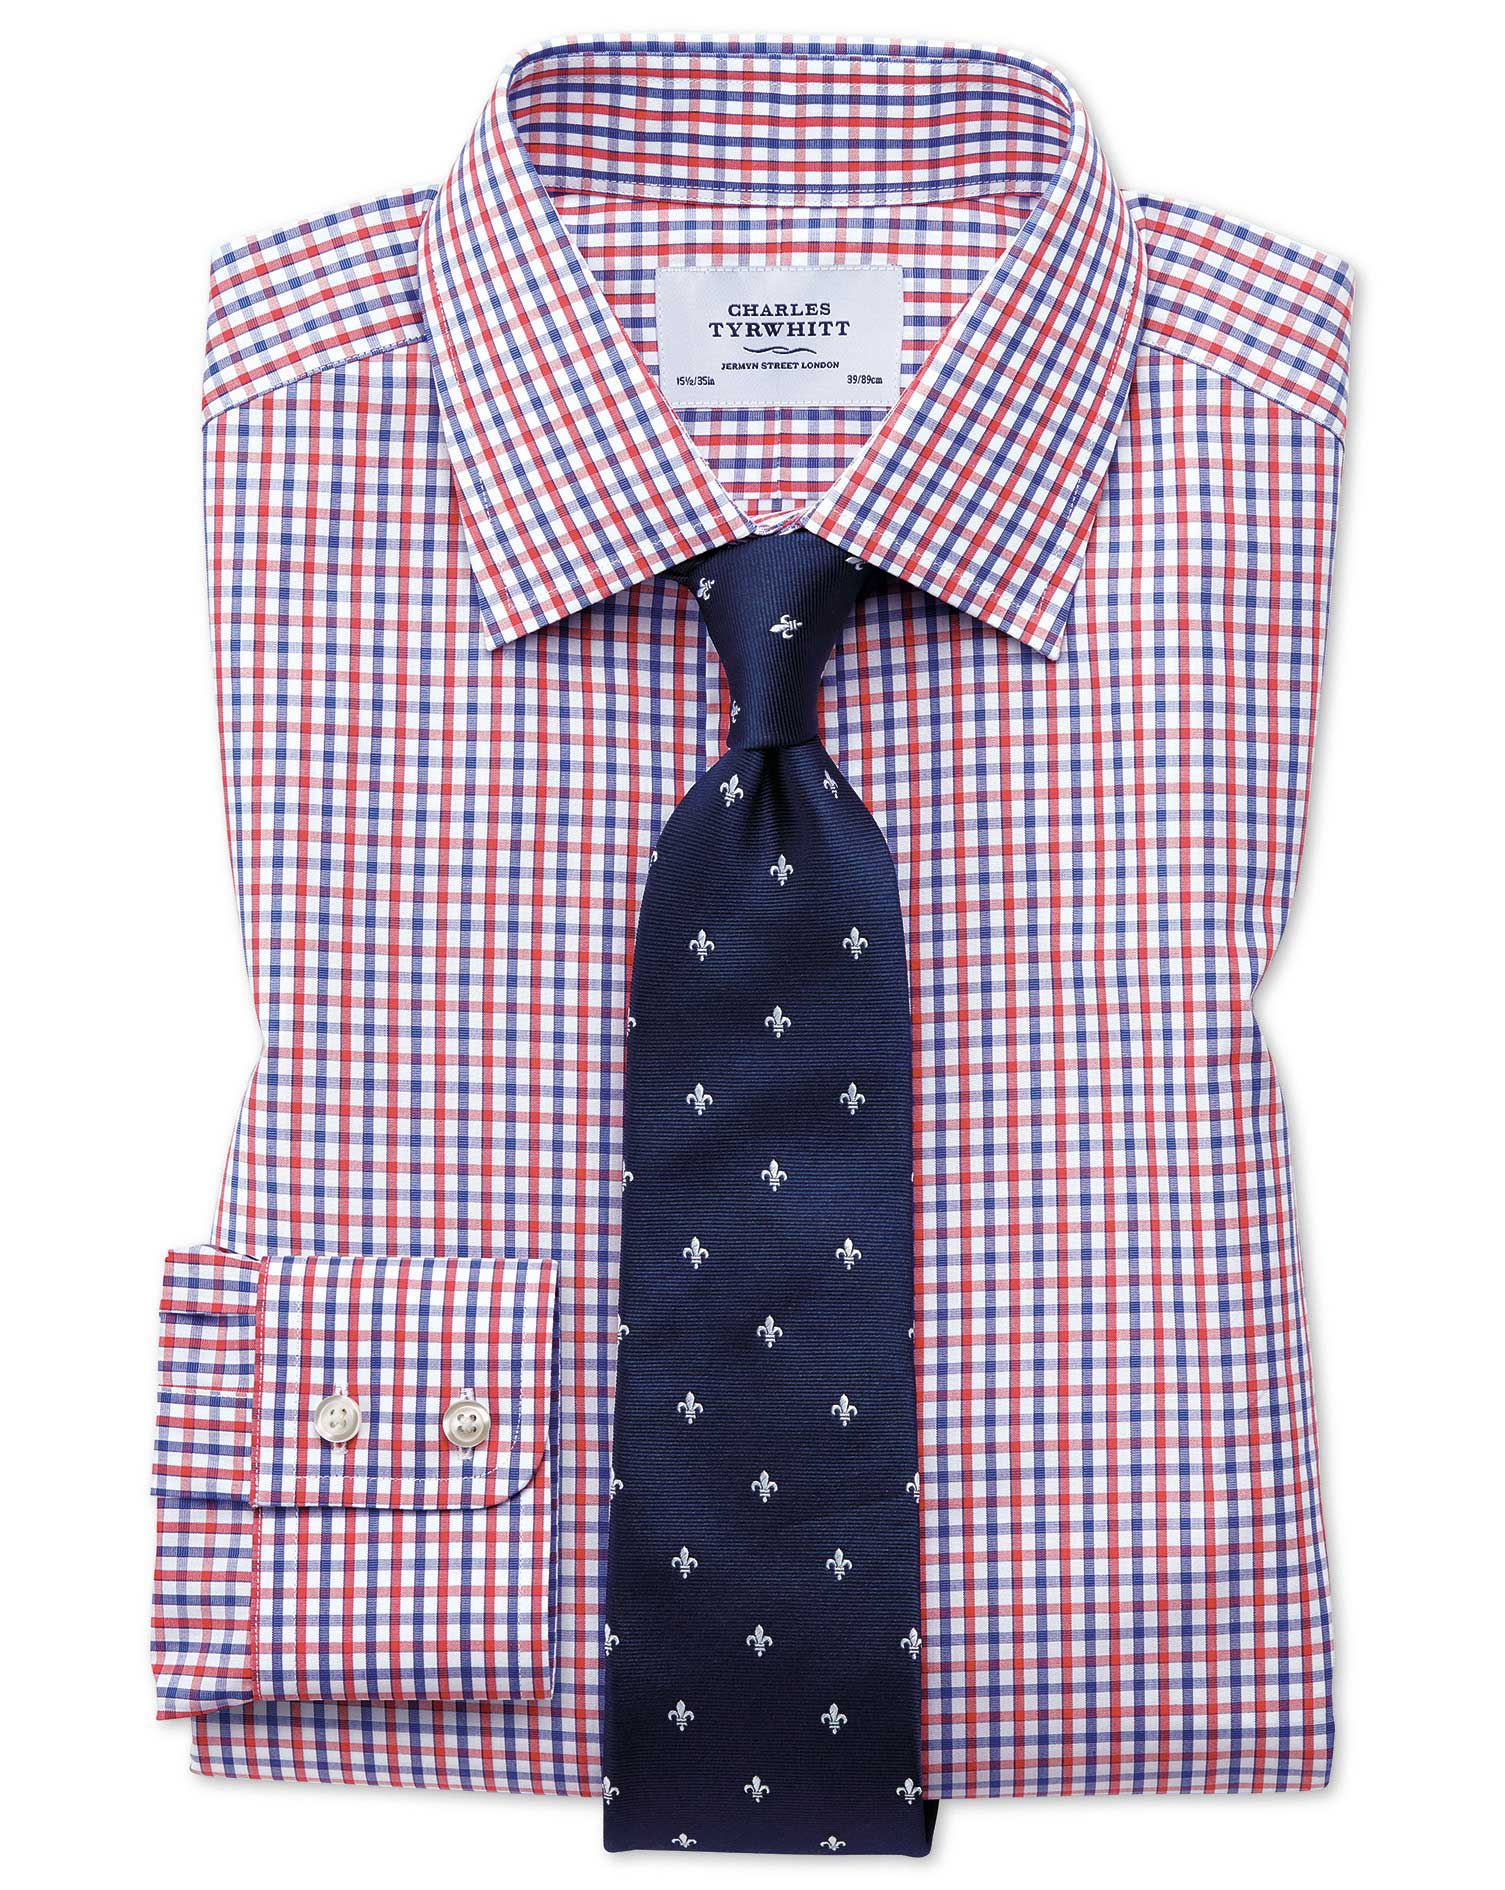 Classic Fit Two Color Check Red And Blue Shirt Charles